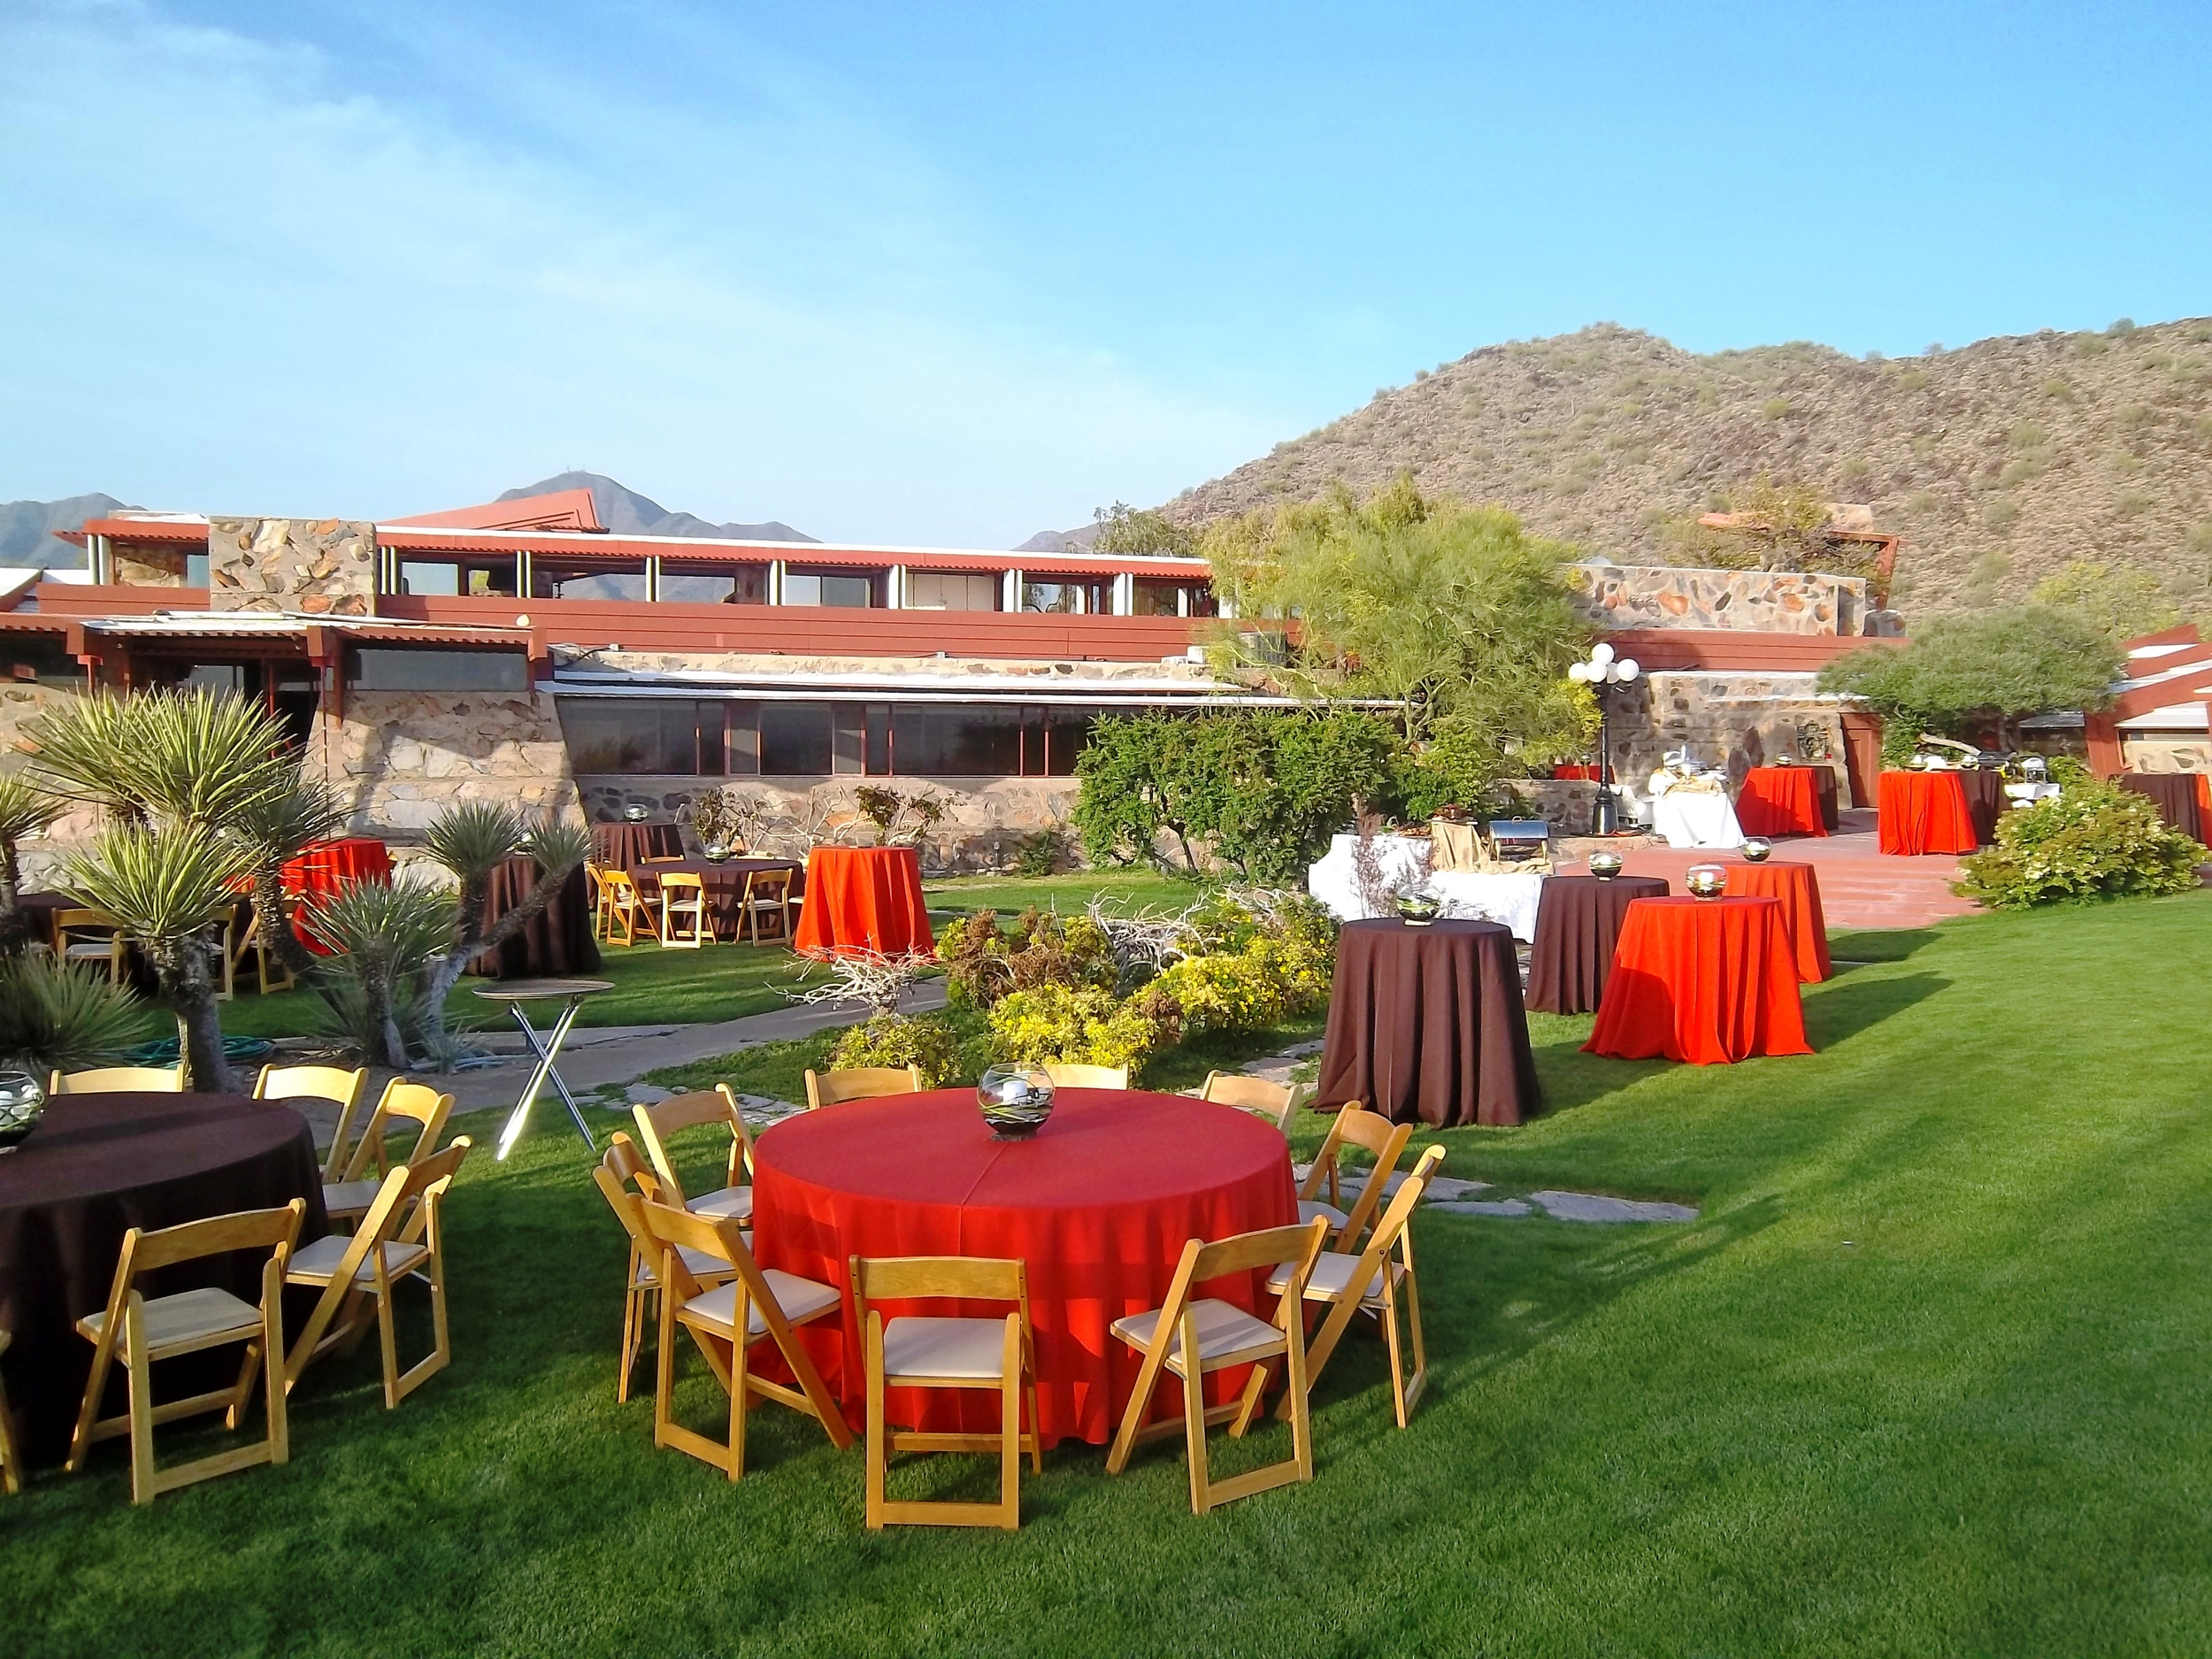 TRUSTED BY OVER 2 DOZEN VENUES ACROSS THE VALLEY   Find us in Phoenix, Mesa, Tempe & Scottsdale.